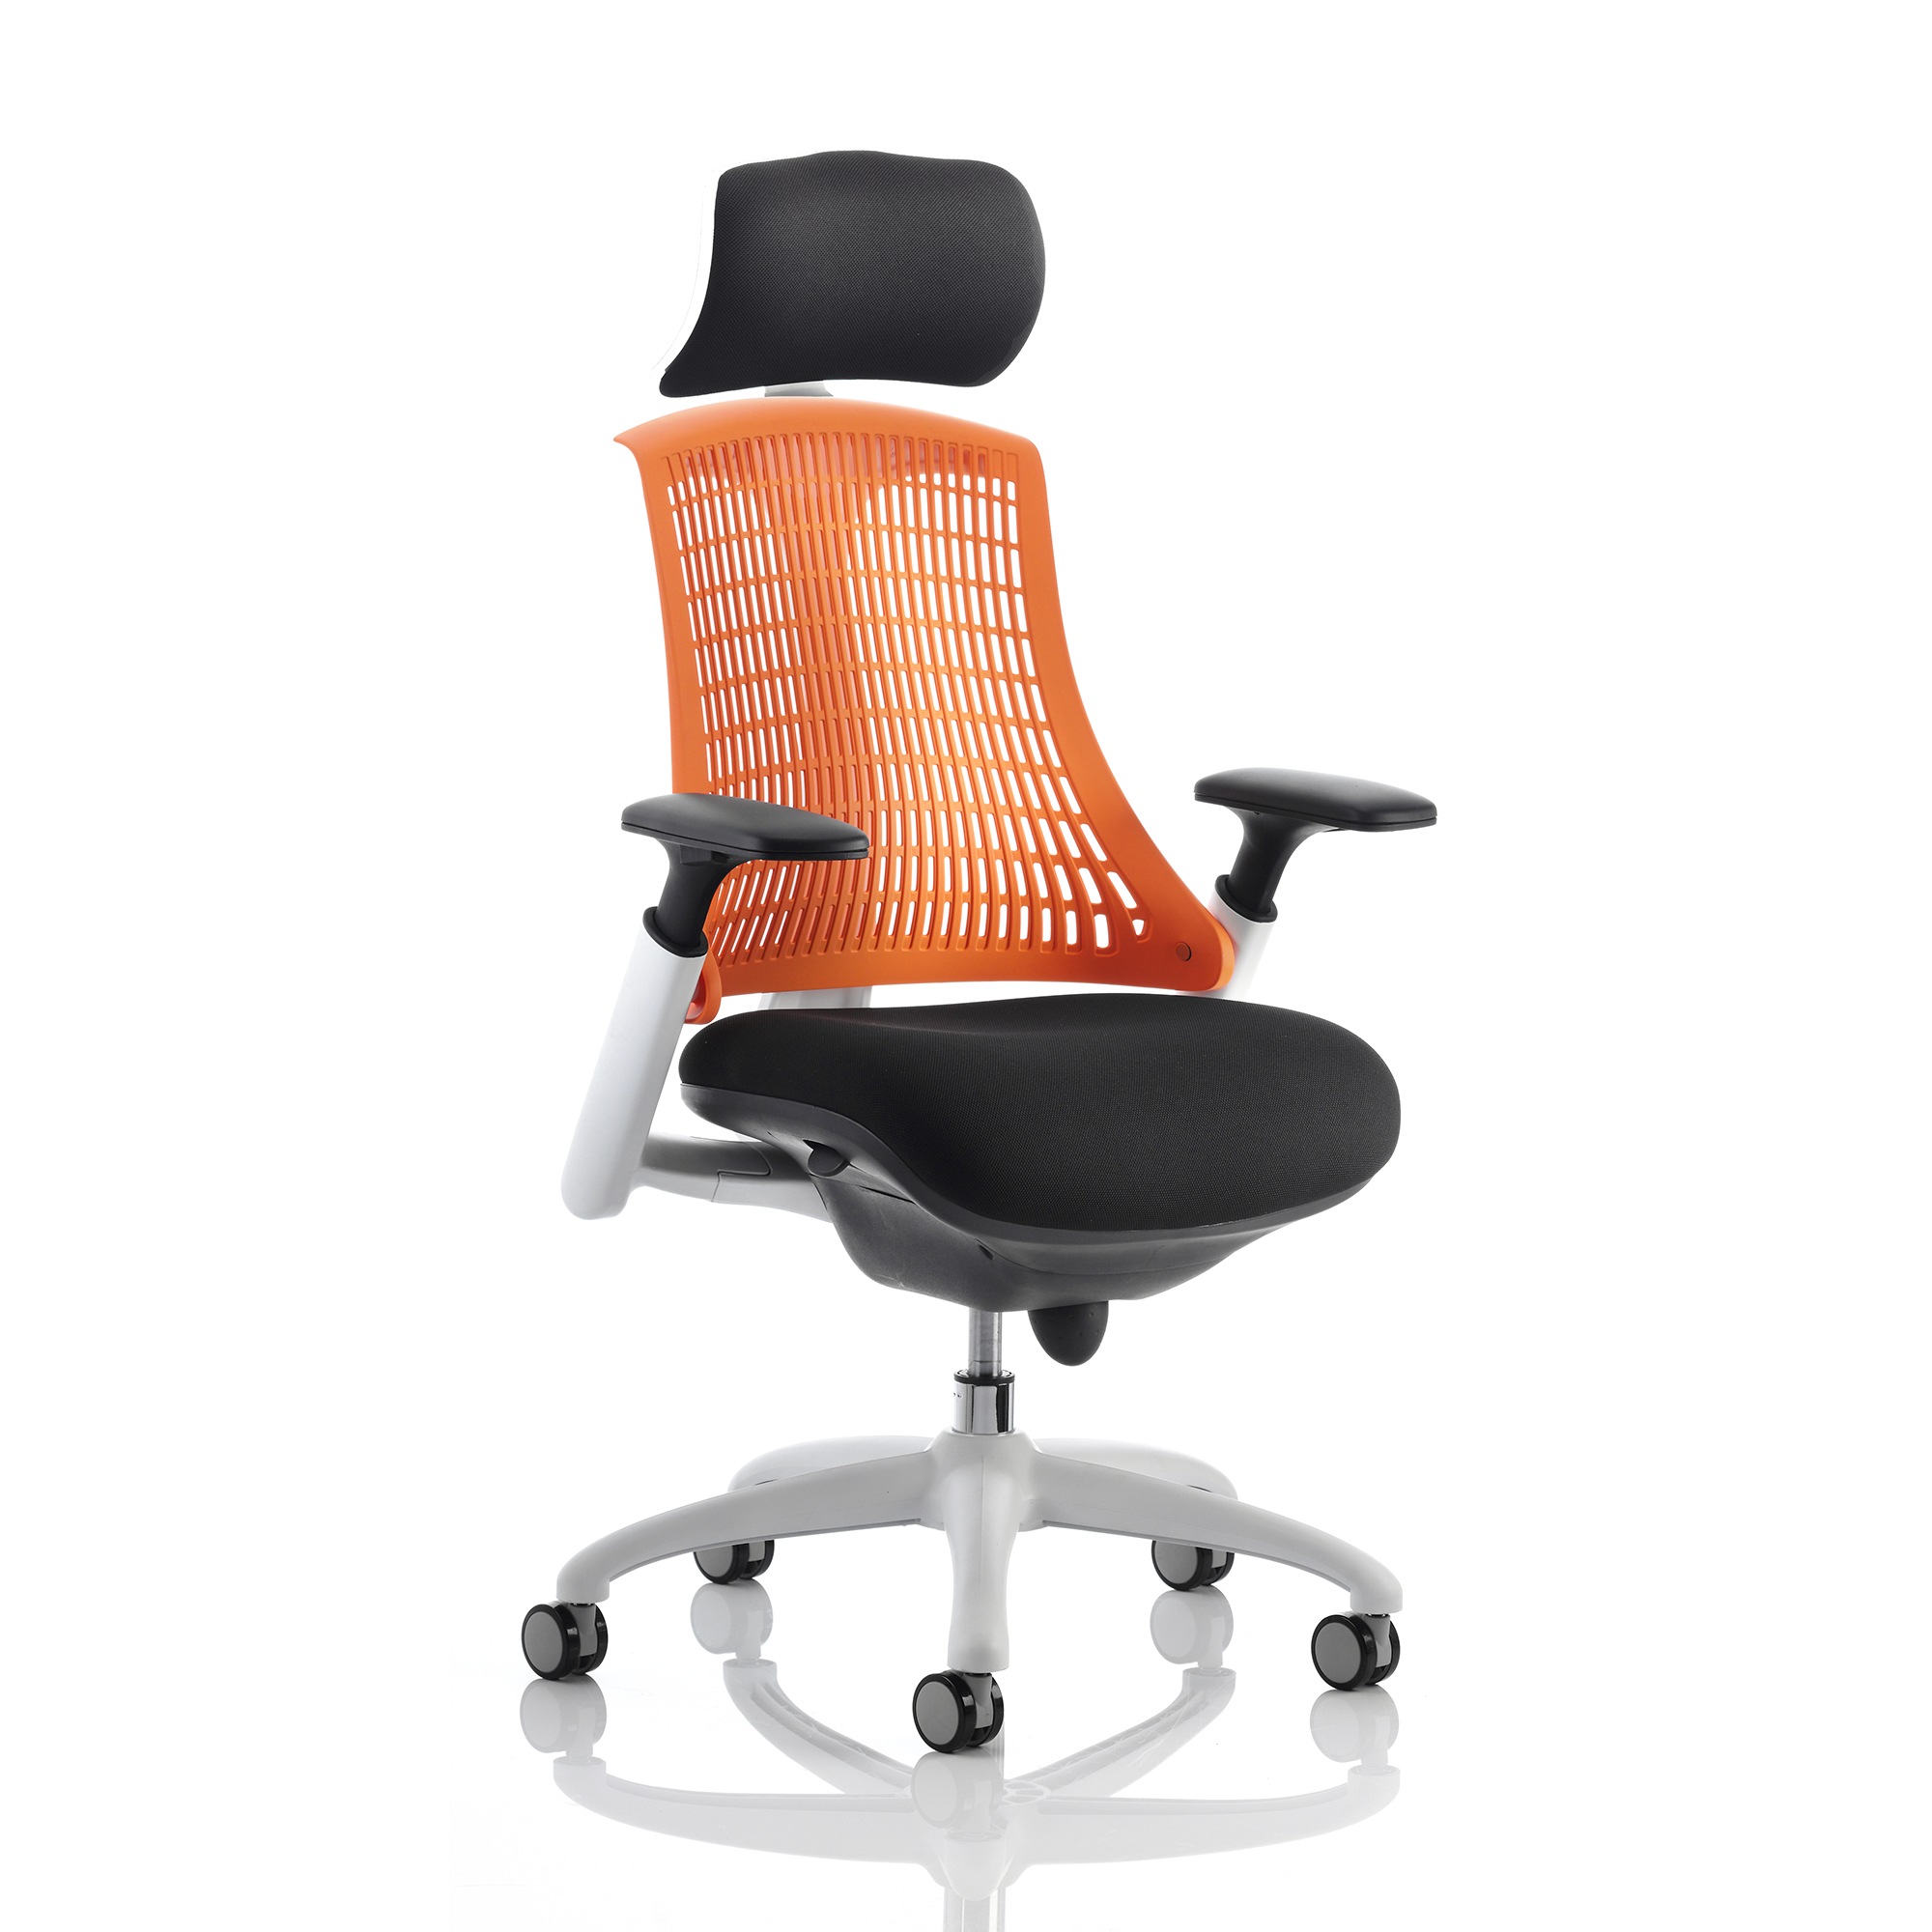 Trexus Flex Task Operator Chair With Arms And Headrest Blk Fabric Seat Orange Back White Frame Ref KC0091